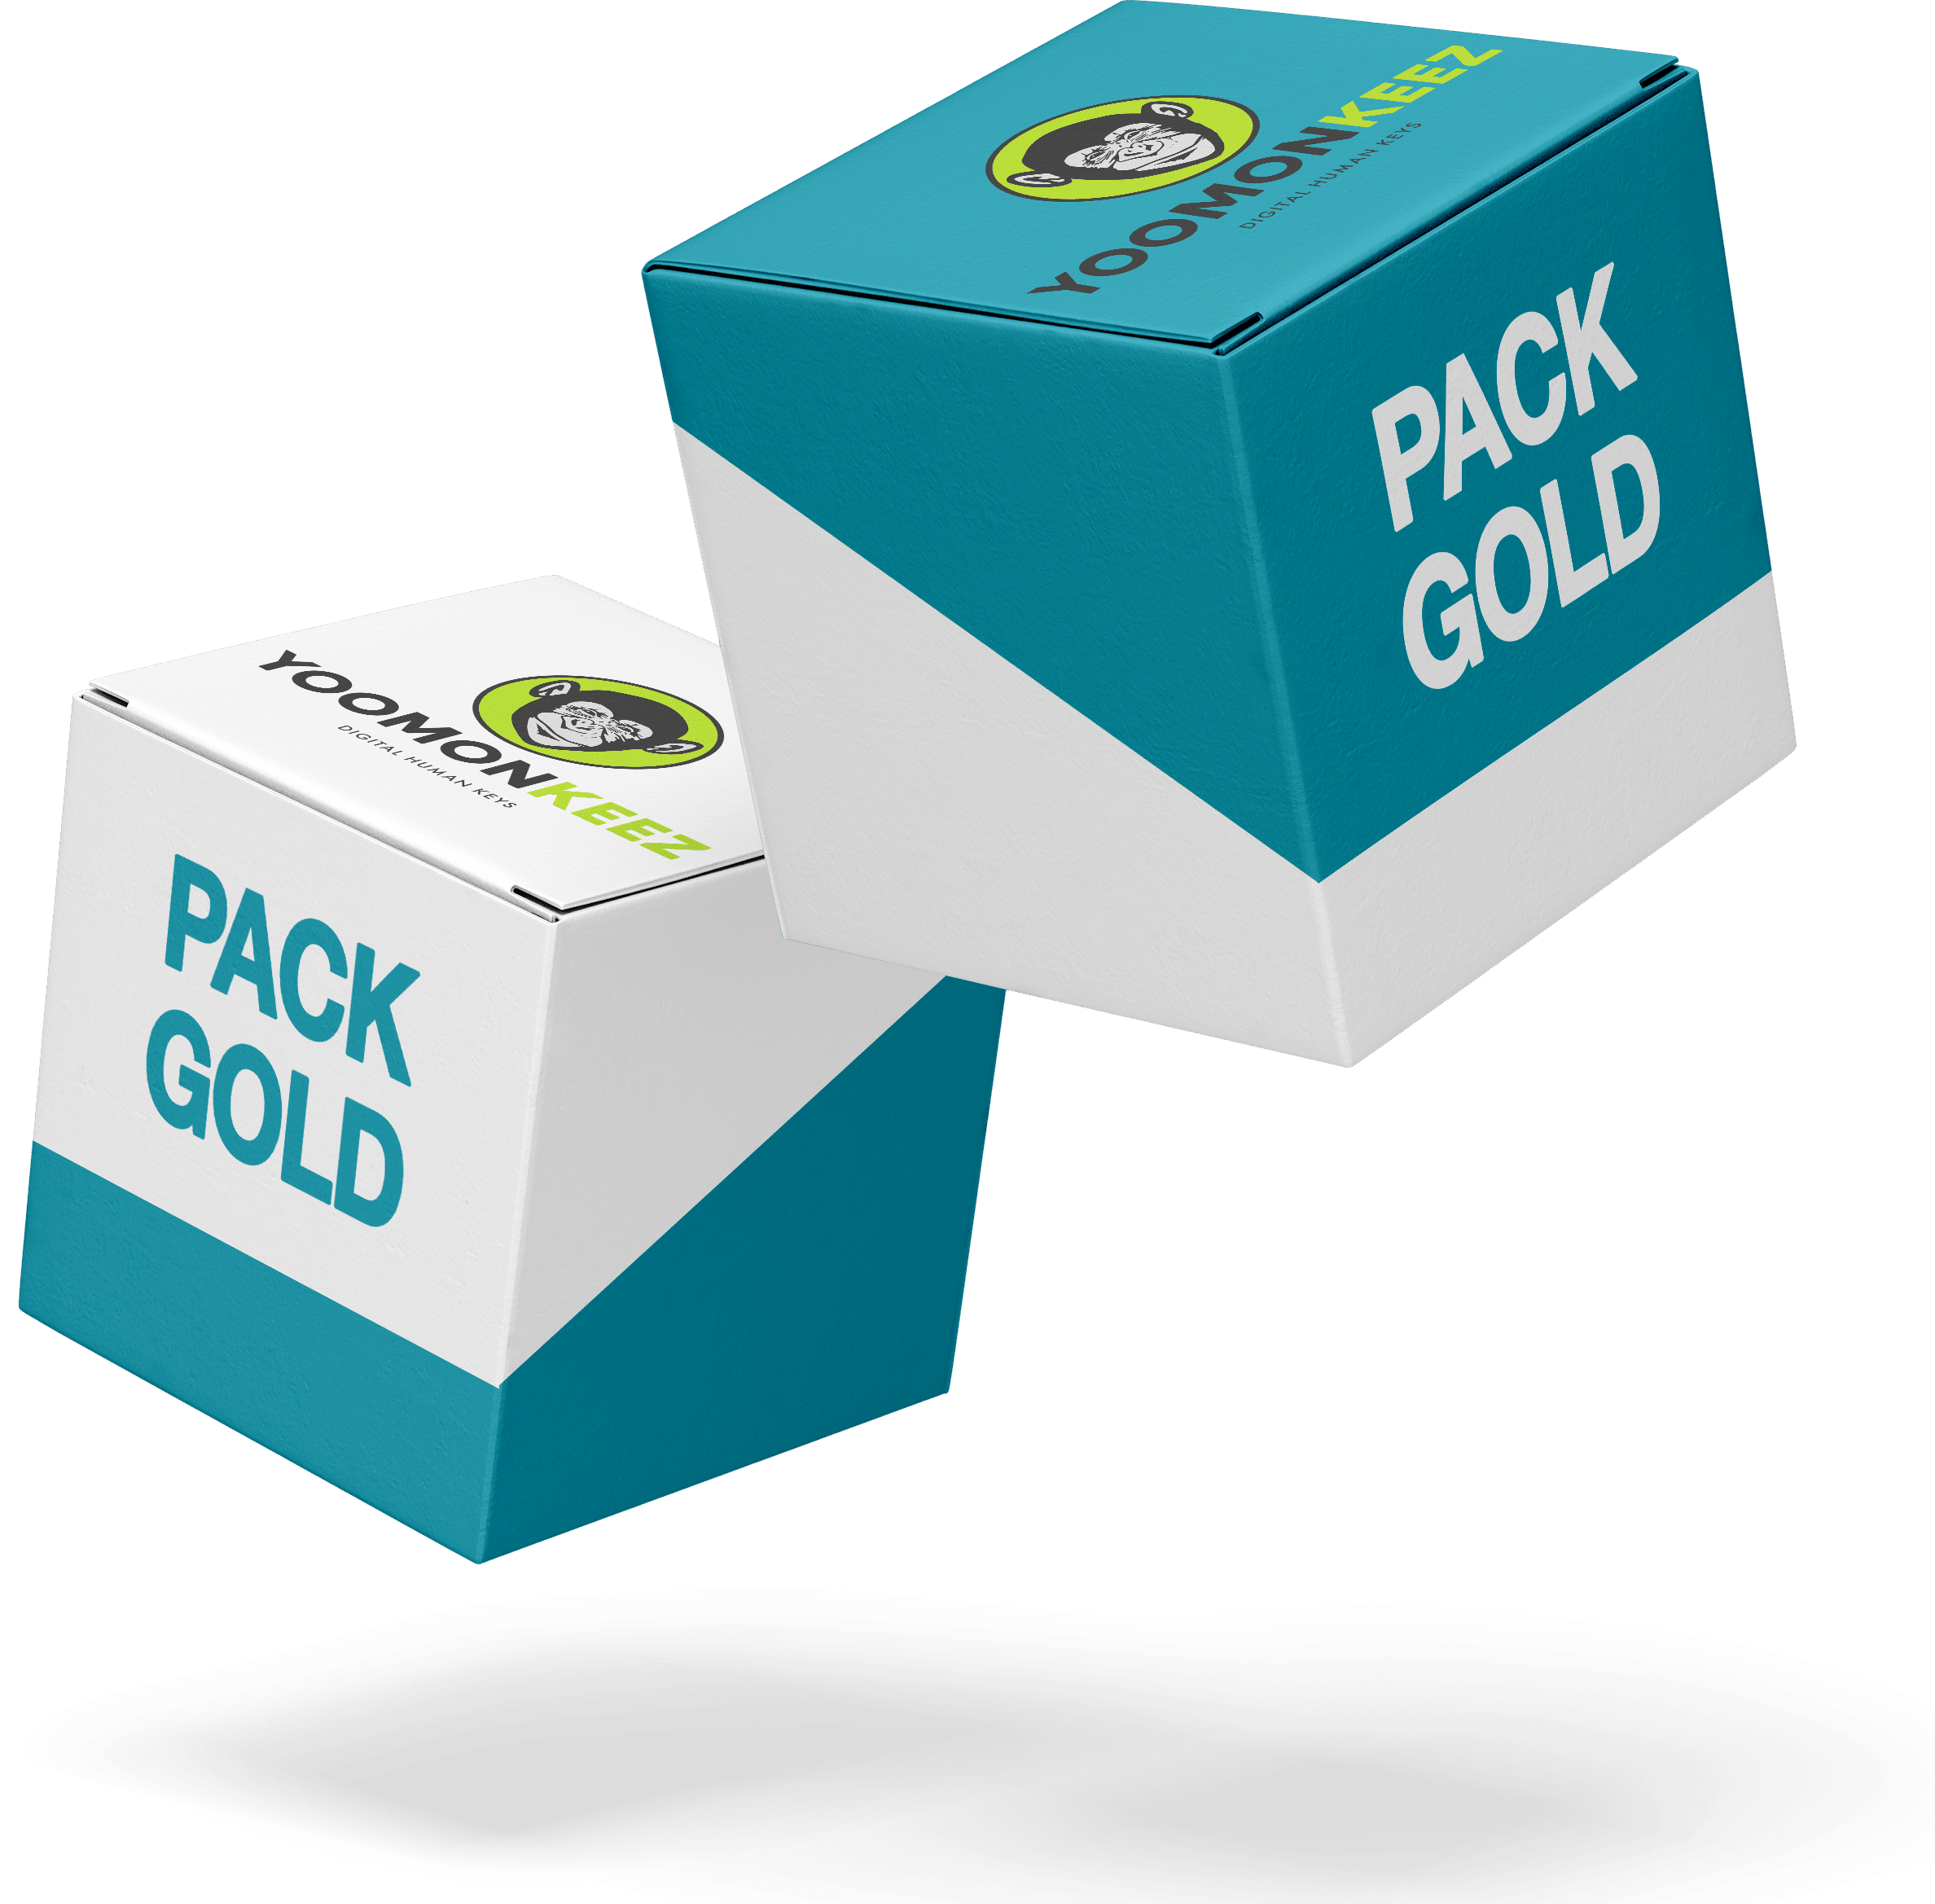 Pack Gold Microlearning